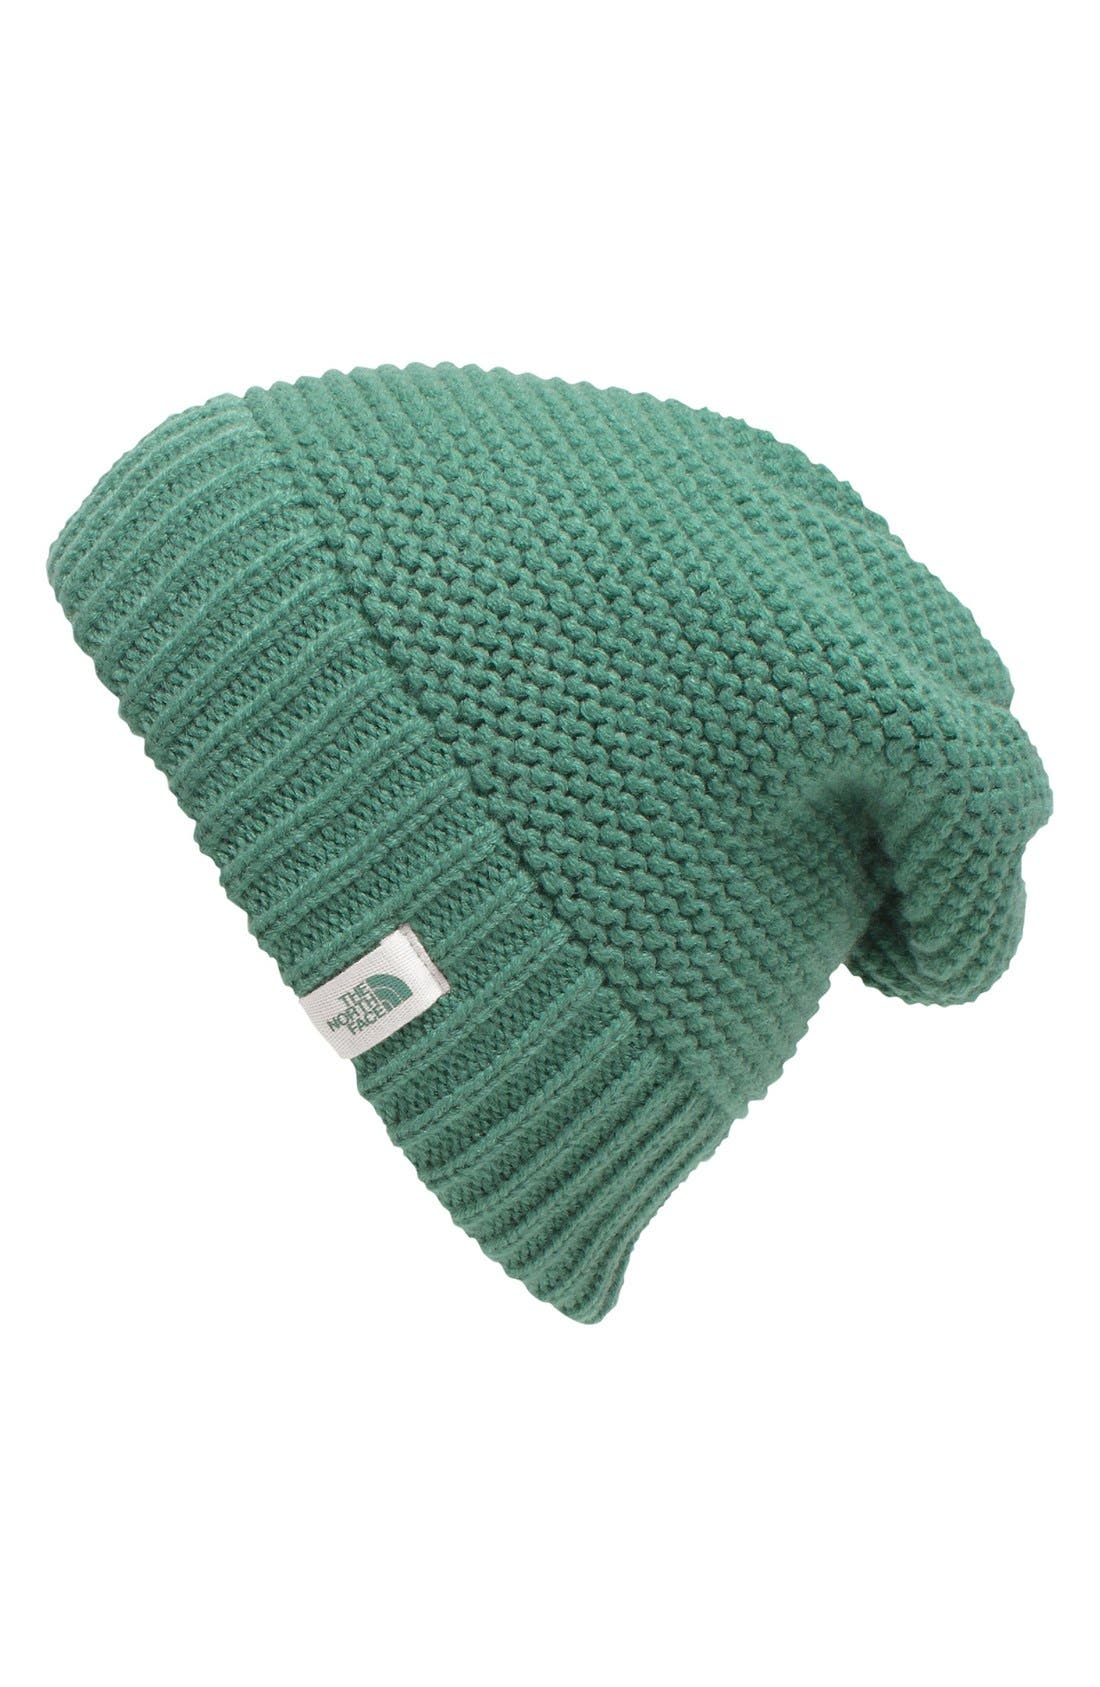 Alternate Image 1 Selected - The North Face 'Purrl' Knit Beanie